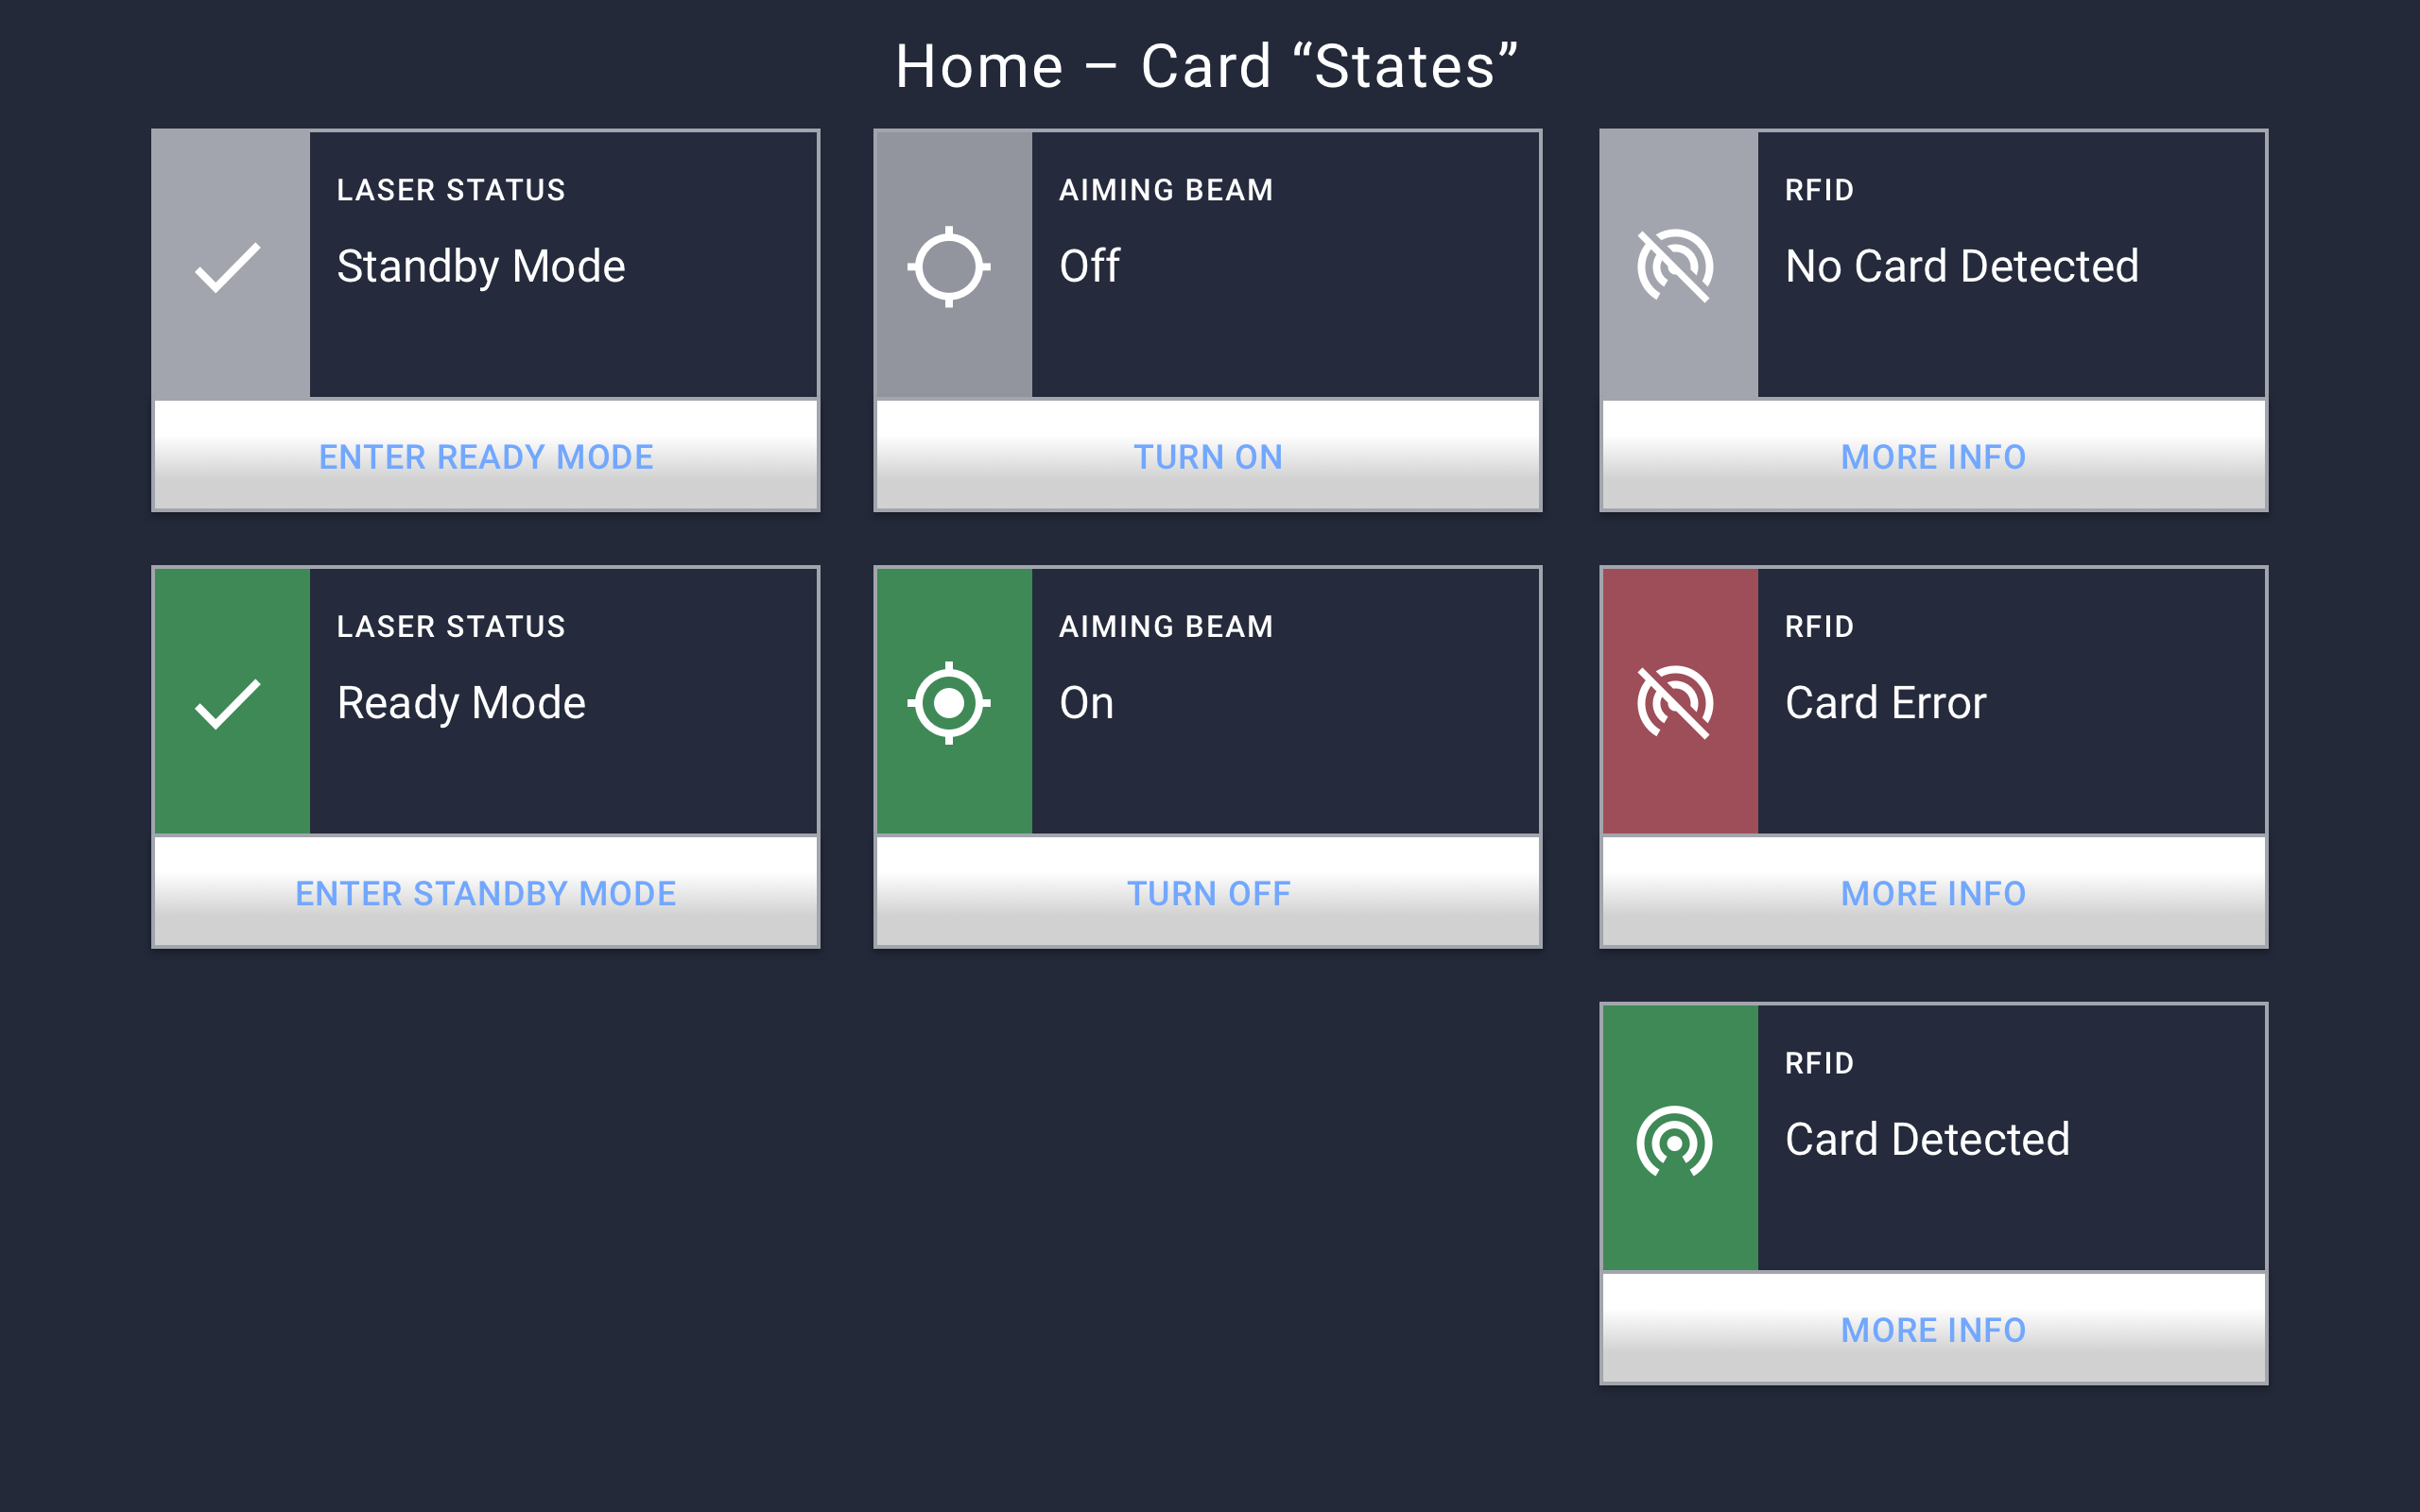 Home card states